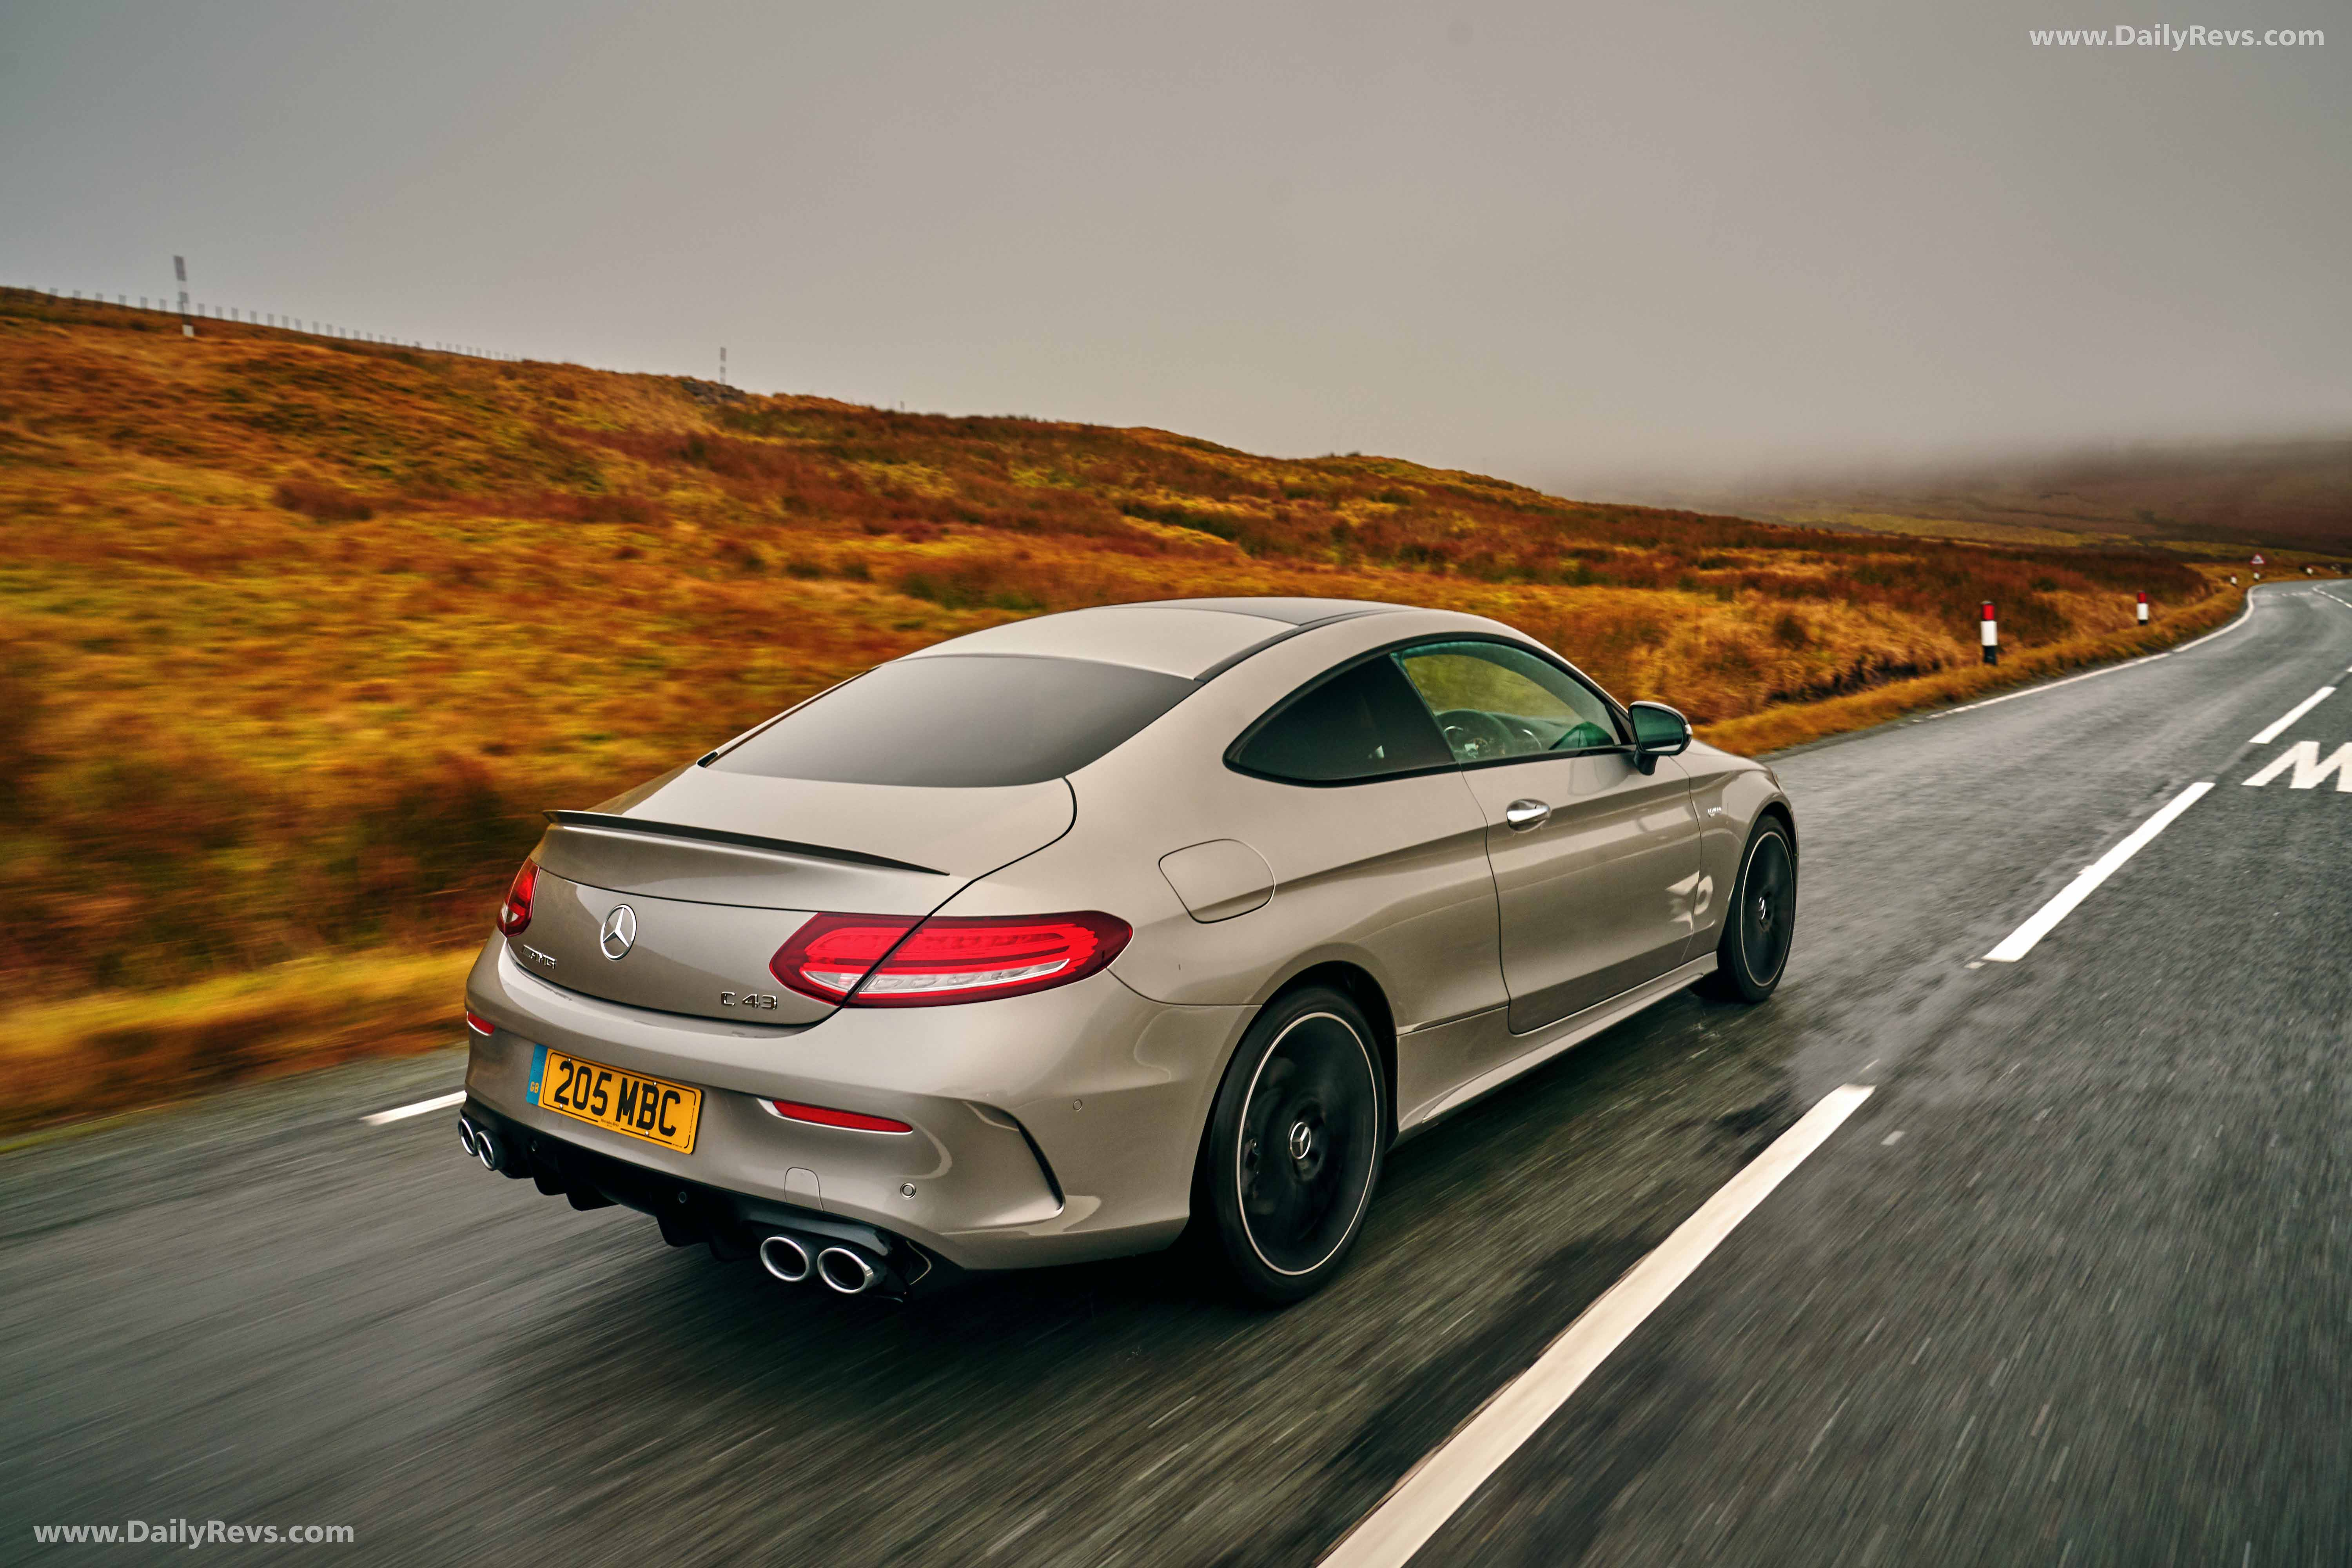 2019 Mercedes-Benz C43 AMG Coupe UK - HD Pictures ...